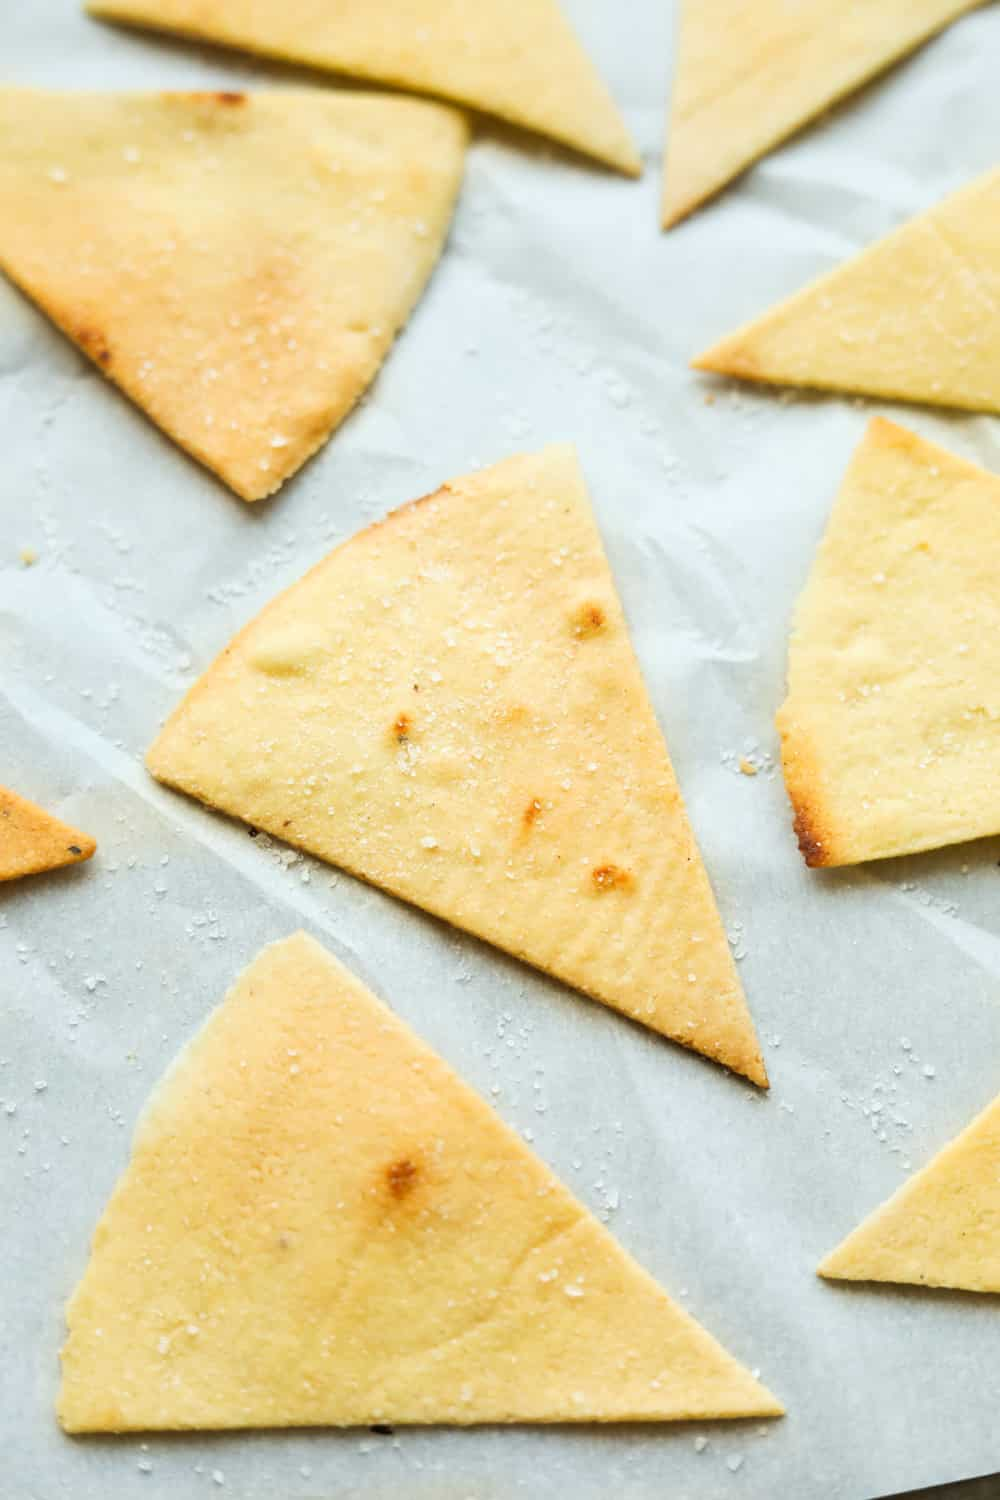 Tortilla chips on white parchment paper.